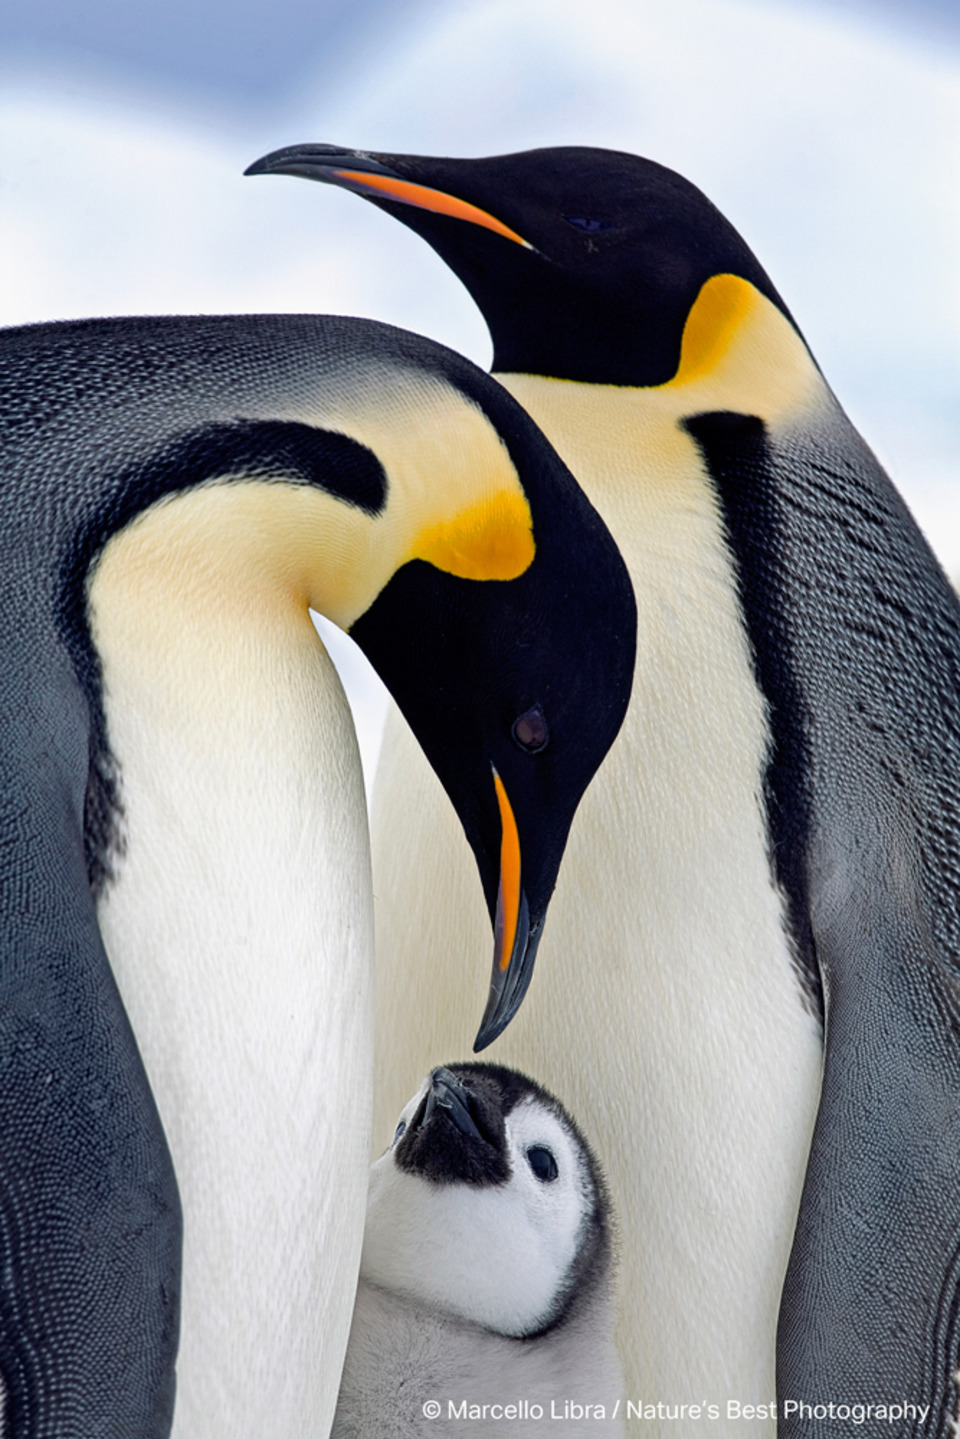 Epson Sponsors 20th Anniversary Nature's Best Photography